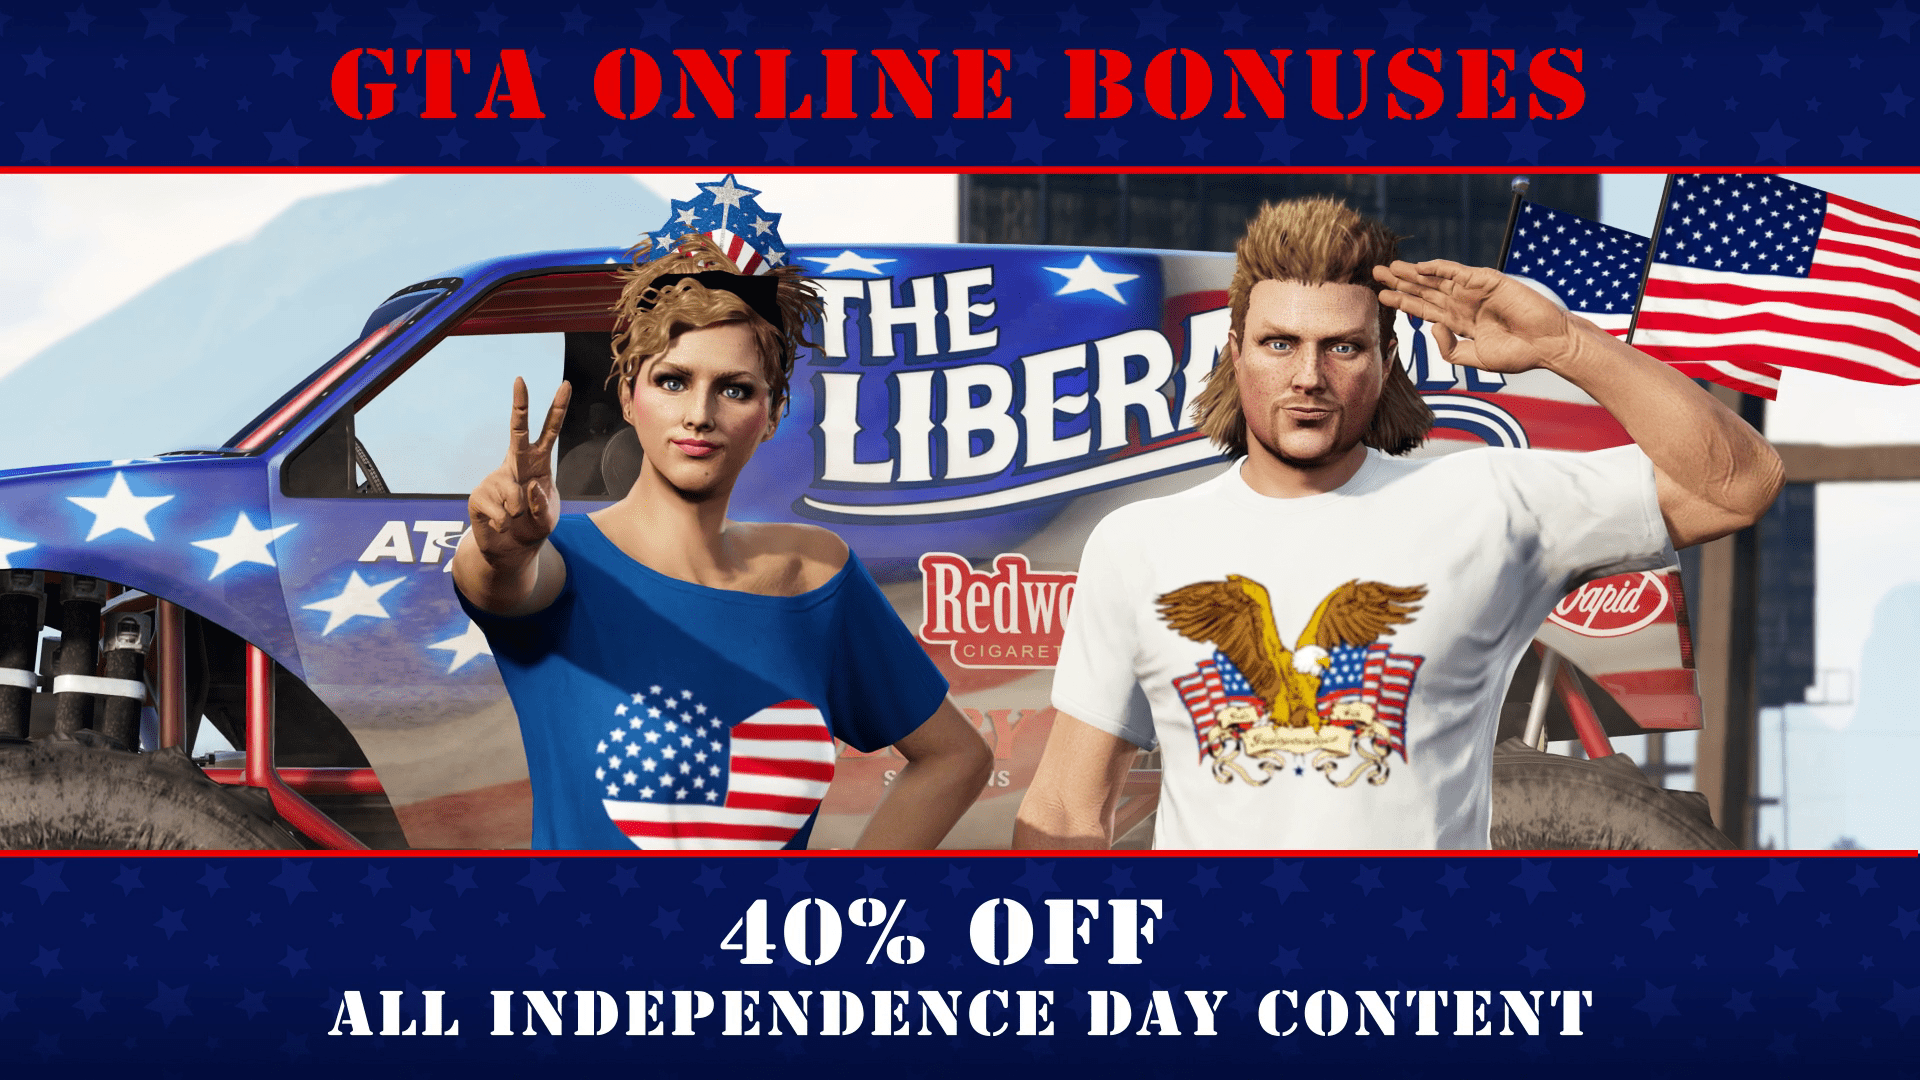 GTA Online: Fourth of July Week Bonuses & Discounts